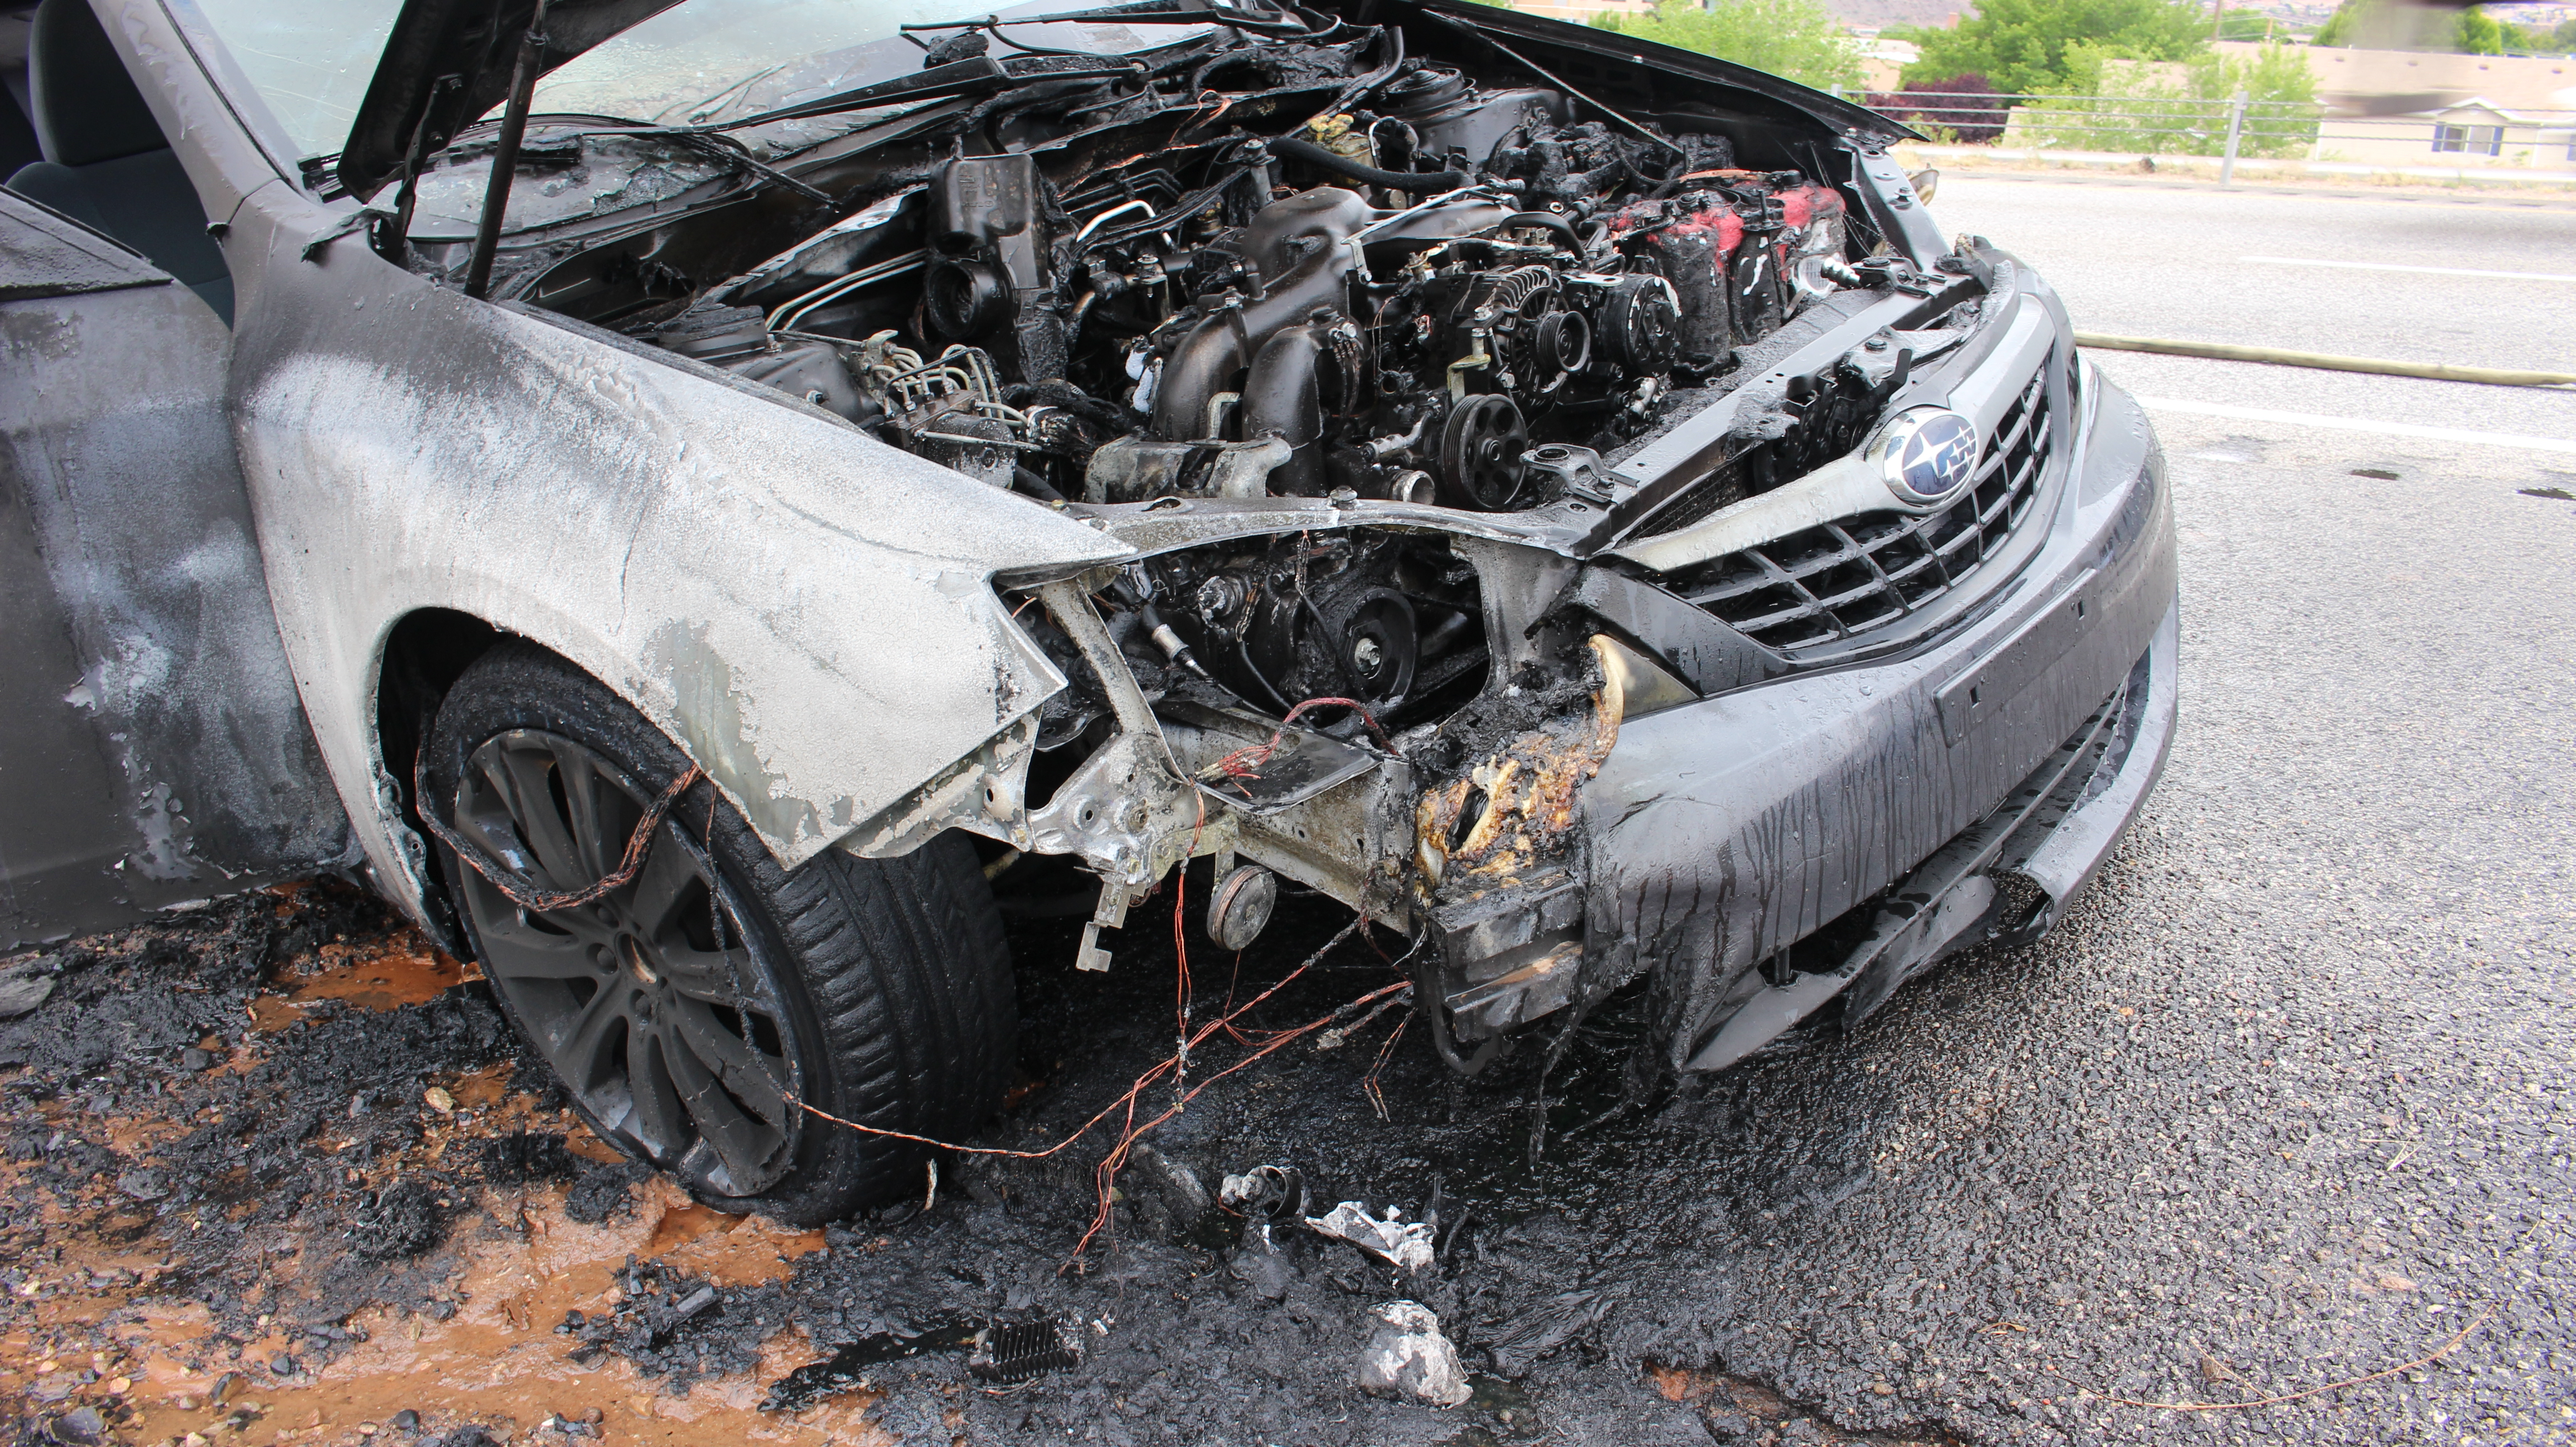 2016 Monte Carlo Ss >> Vehicle fire on Interstate 15 destroys car, disrupts traffic | St George News